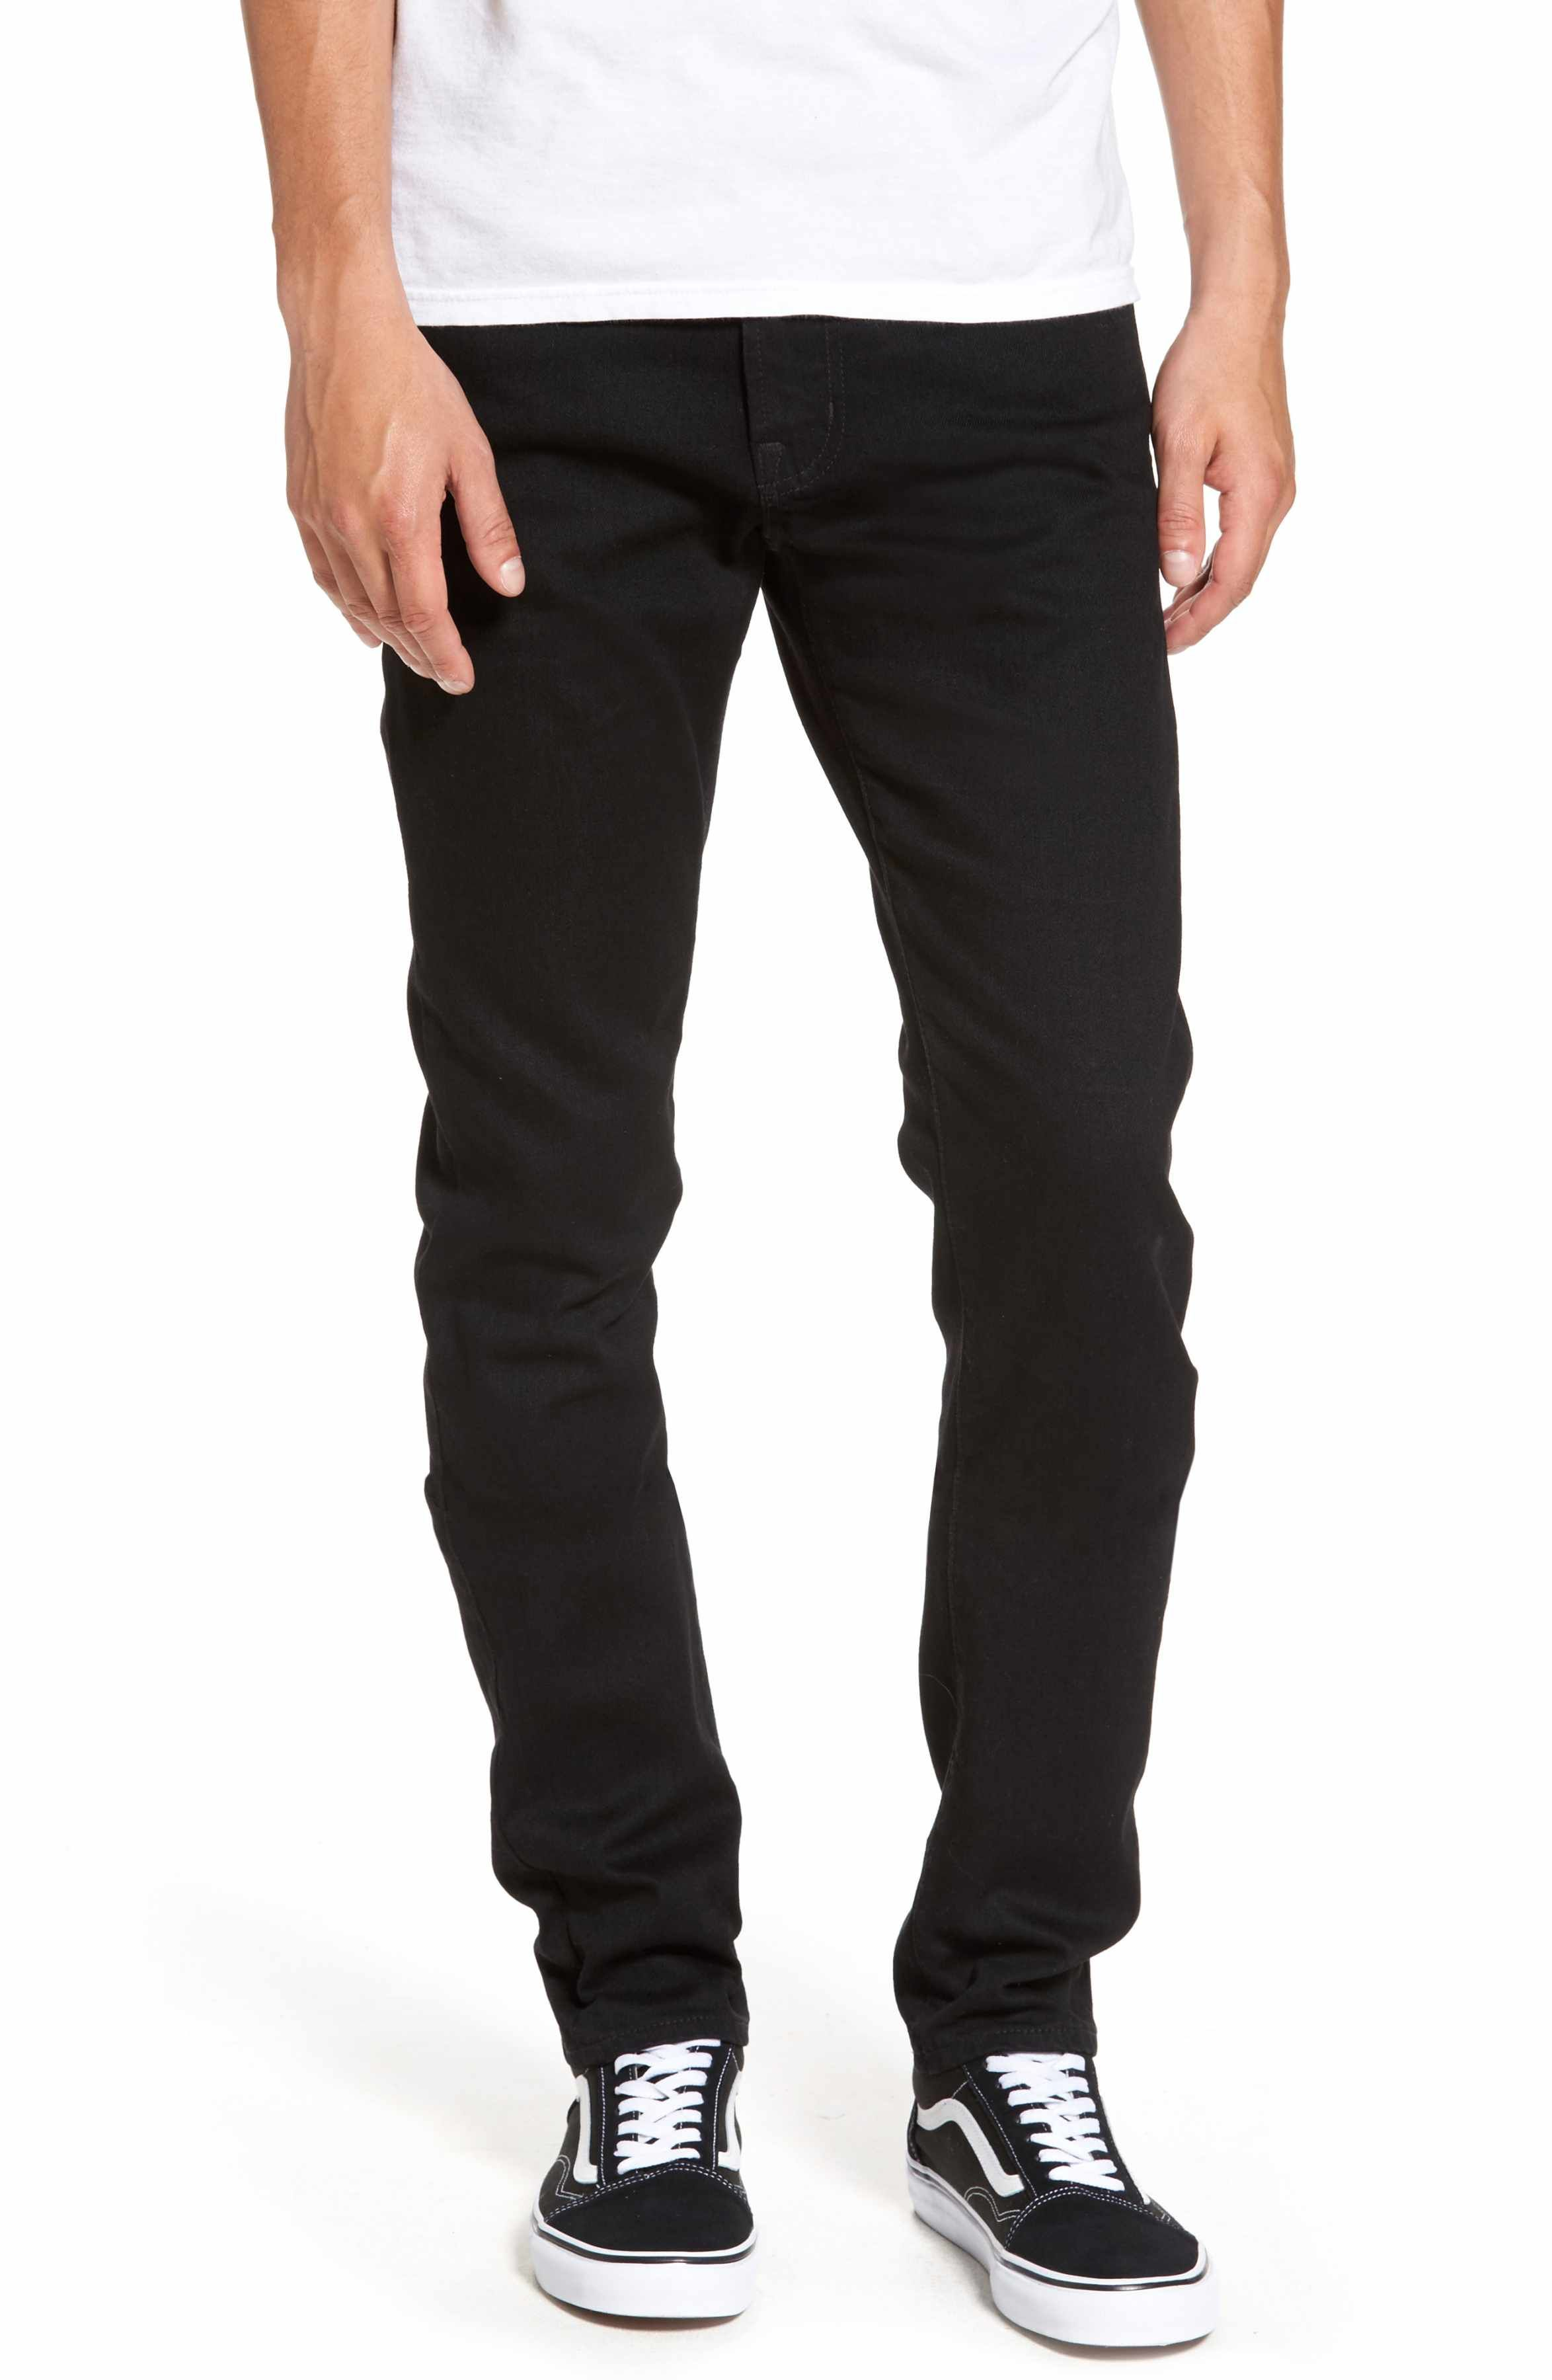 979b02b843 A deep black wash adds clean style to versatile jeans cut in a slim ...